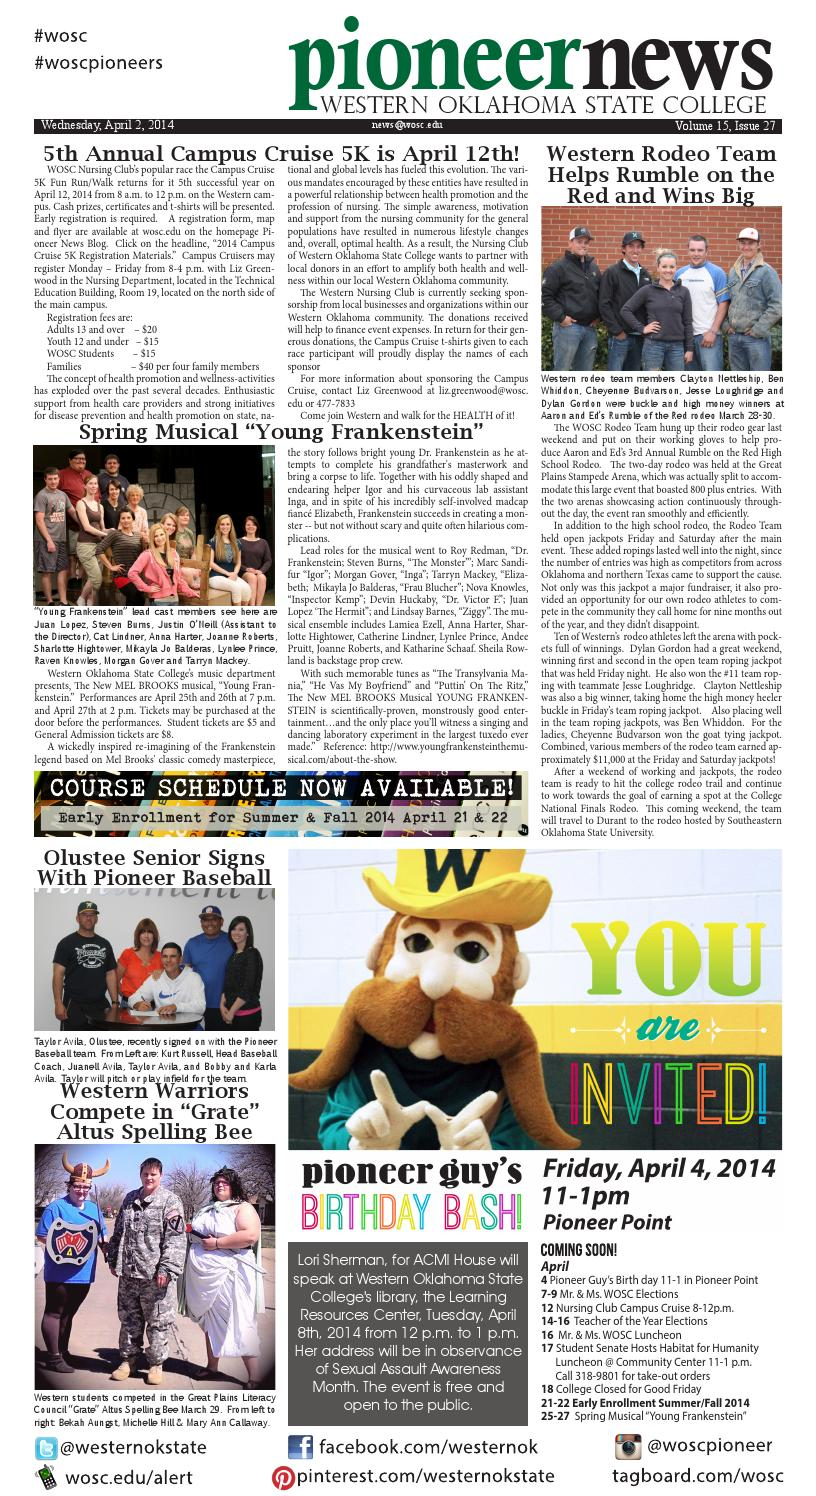 Pioneer News Vol 15 Issue 27 Apr 3 2014 By Western Ok State